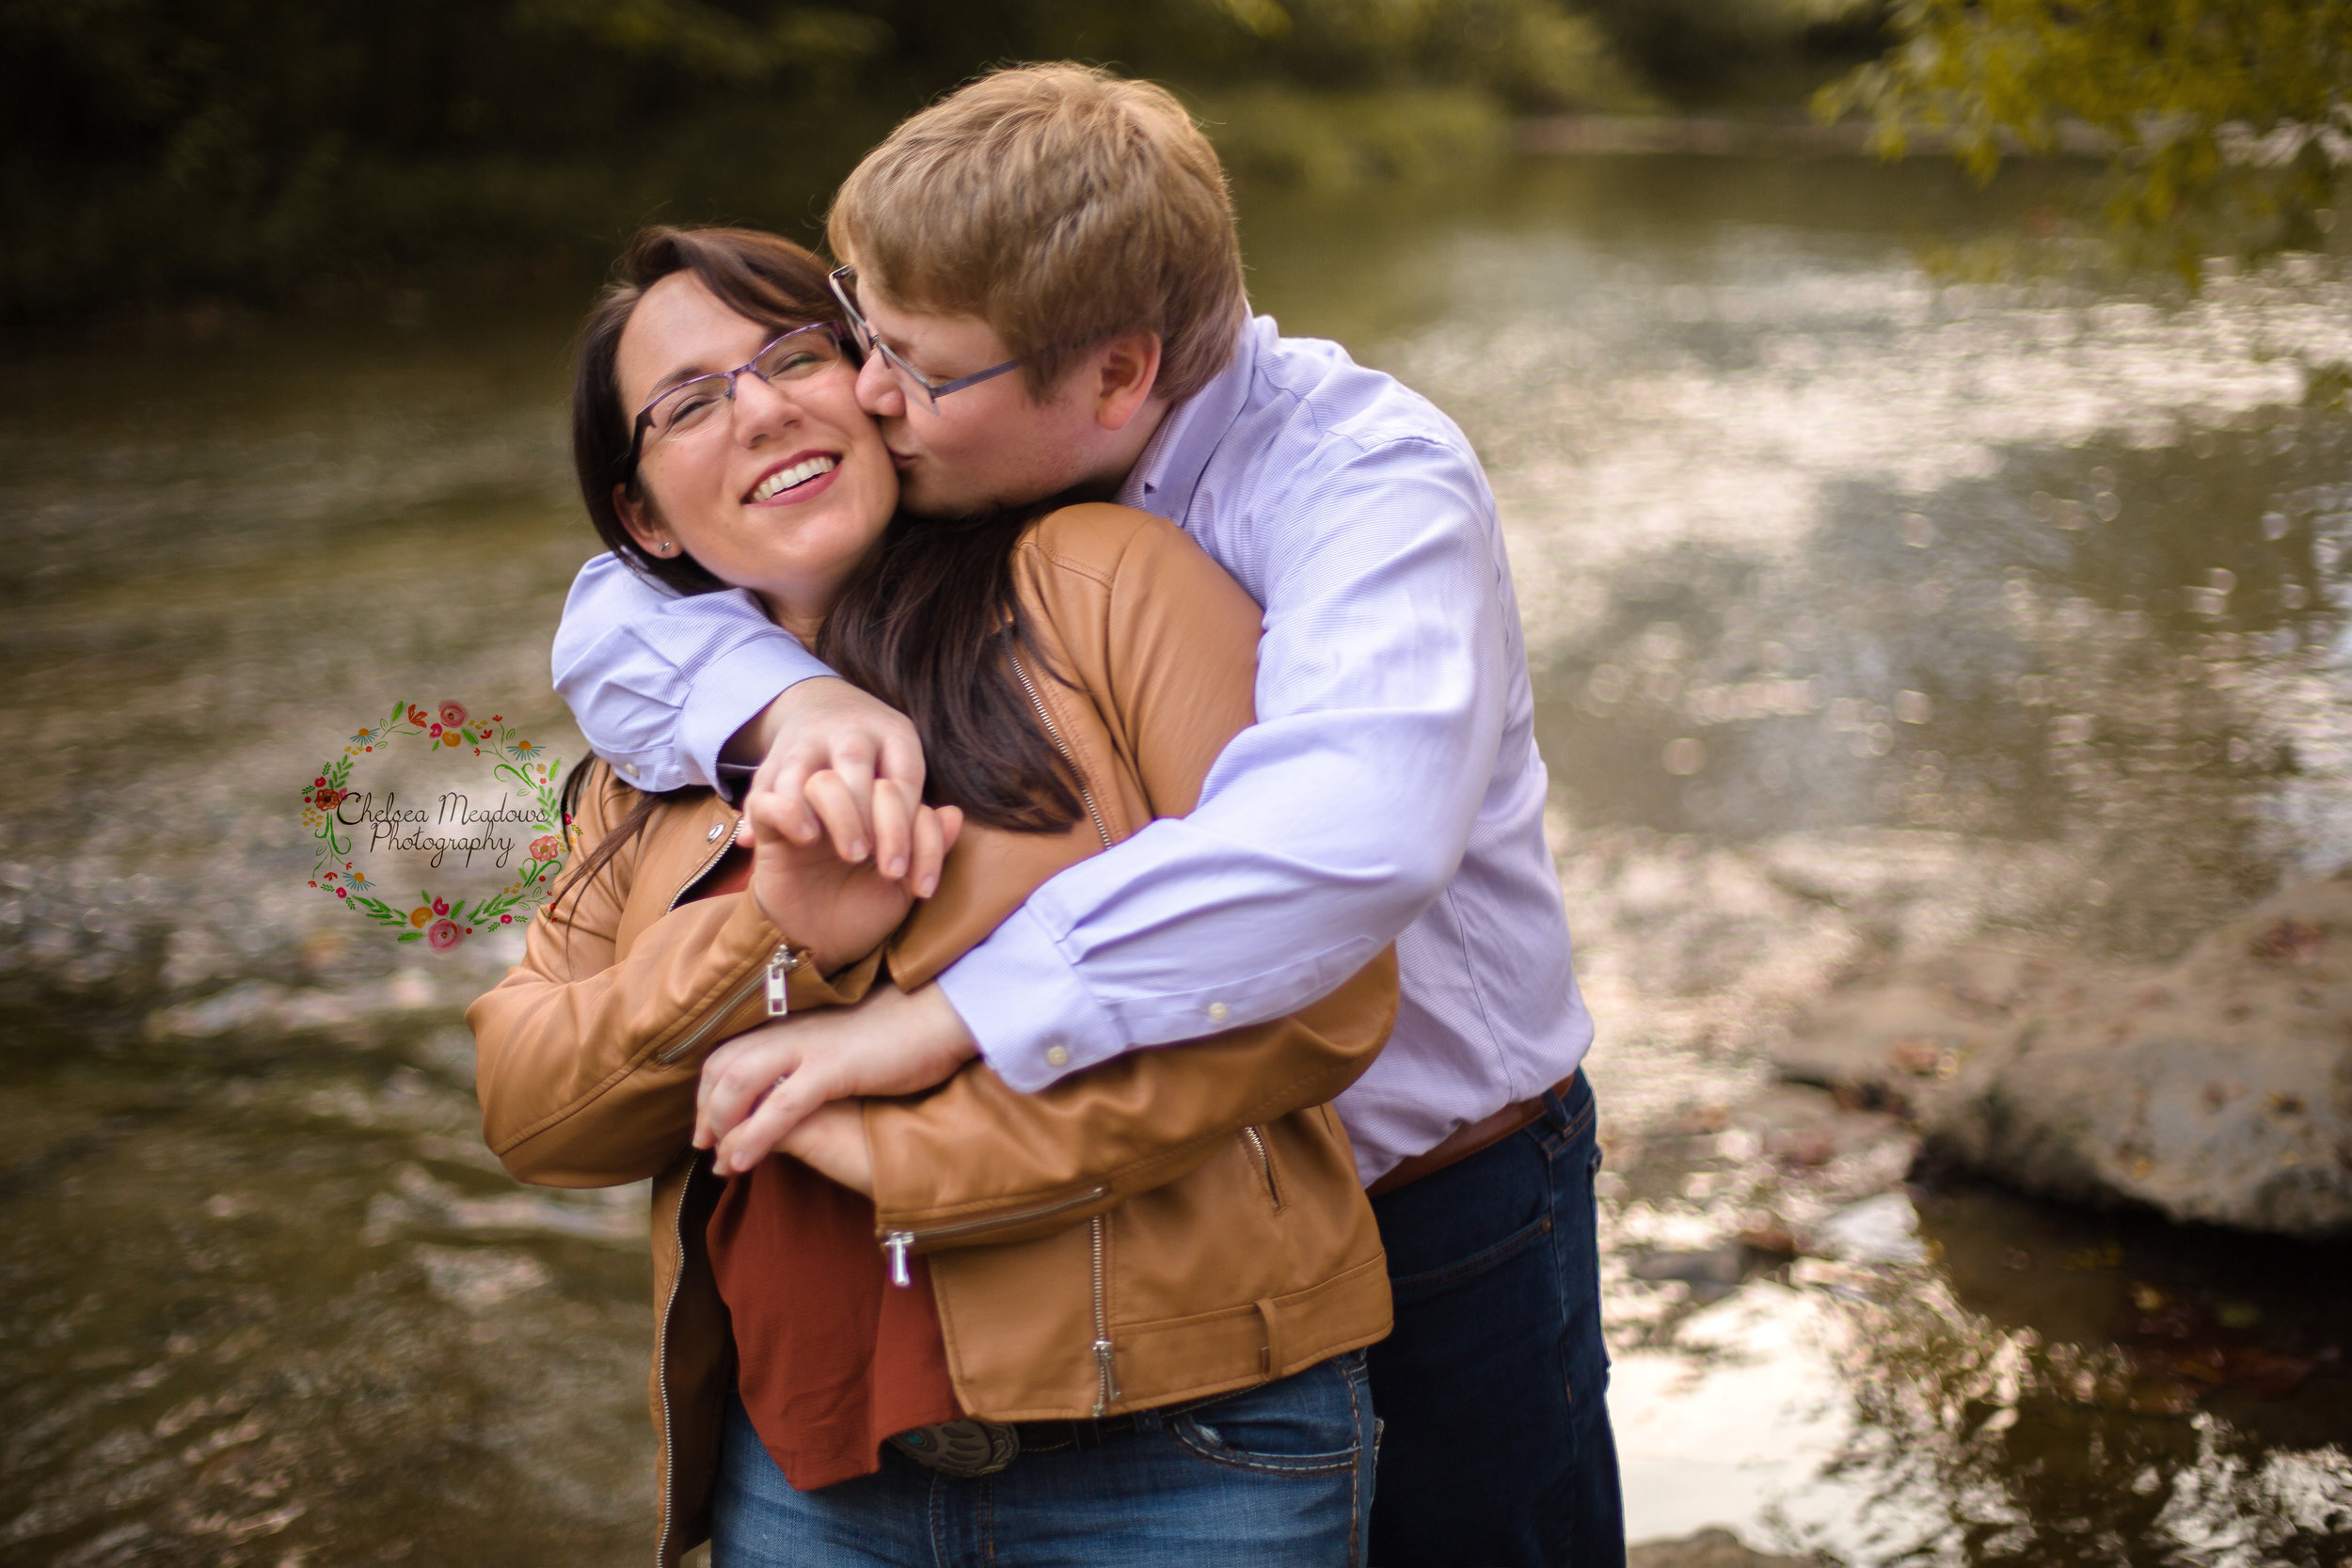 Ashley & Alex Engagement Session - Nashville Couple Photographer - Chelsea Meadows Photography (48).jpg